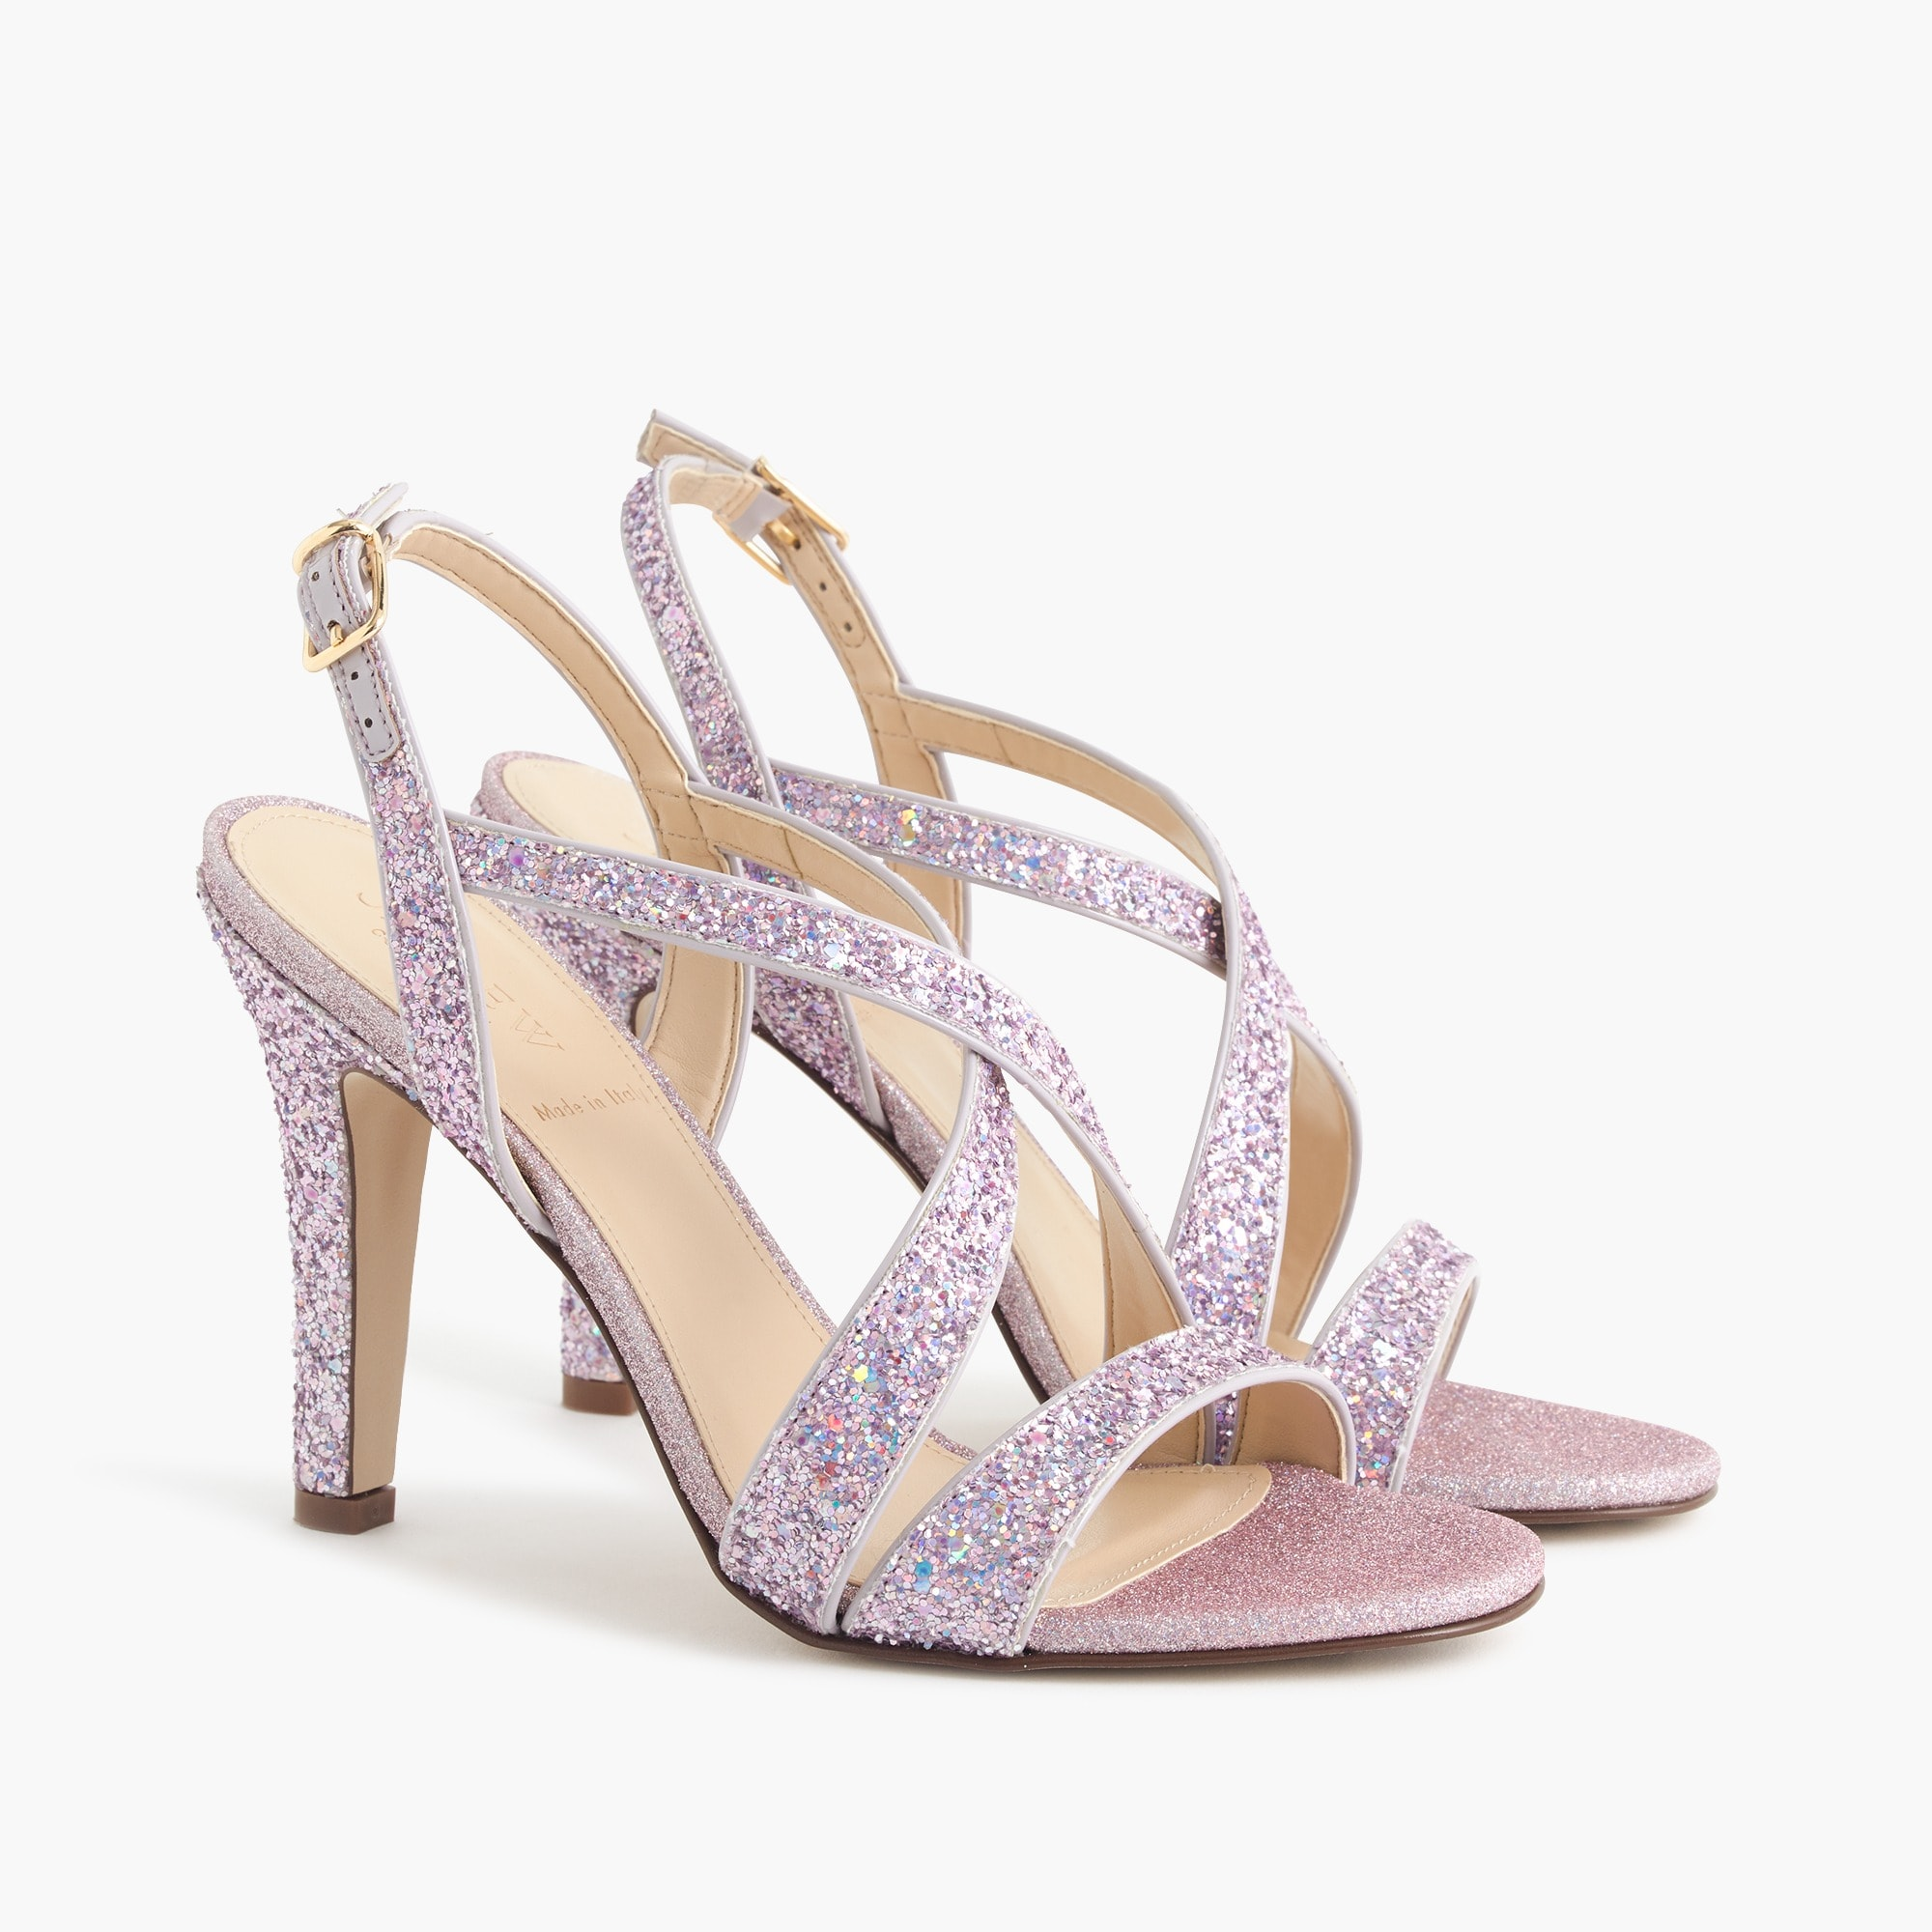 Crisscross strappy heels (105mm) in glitter